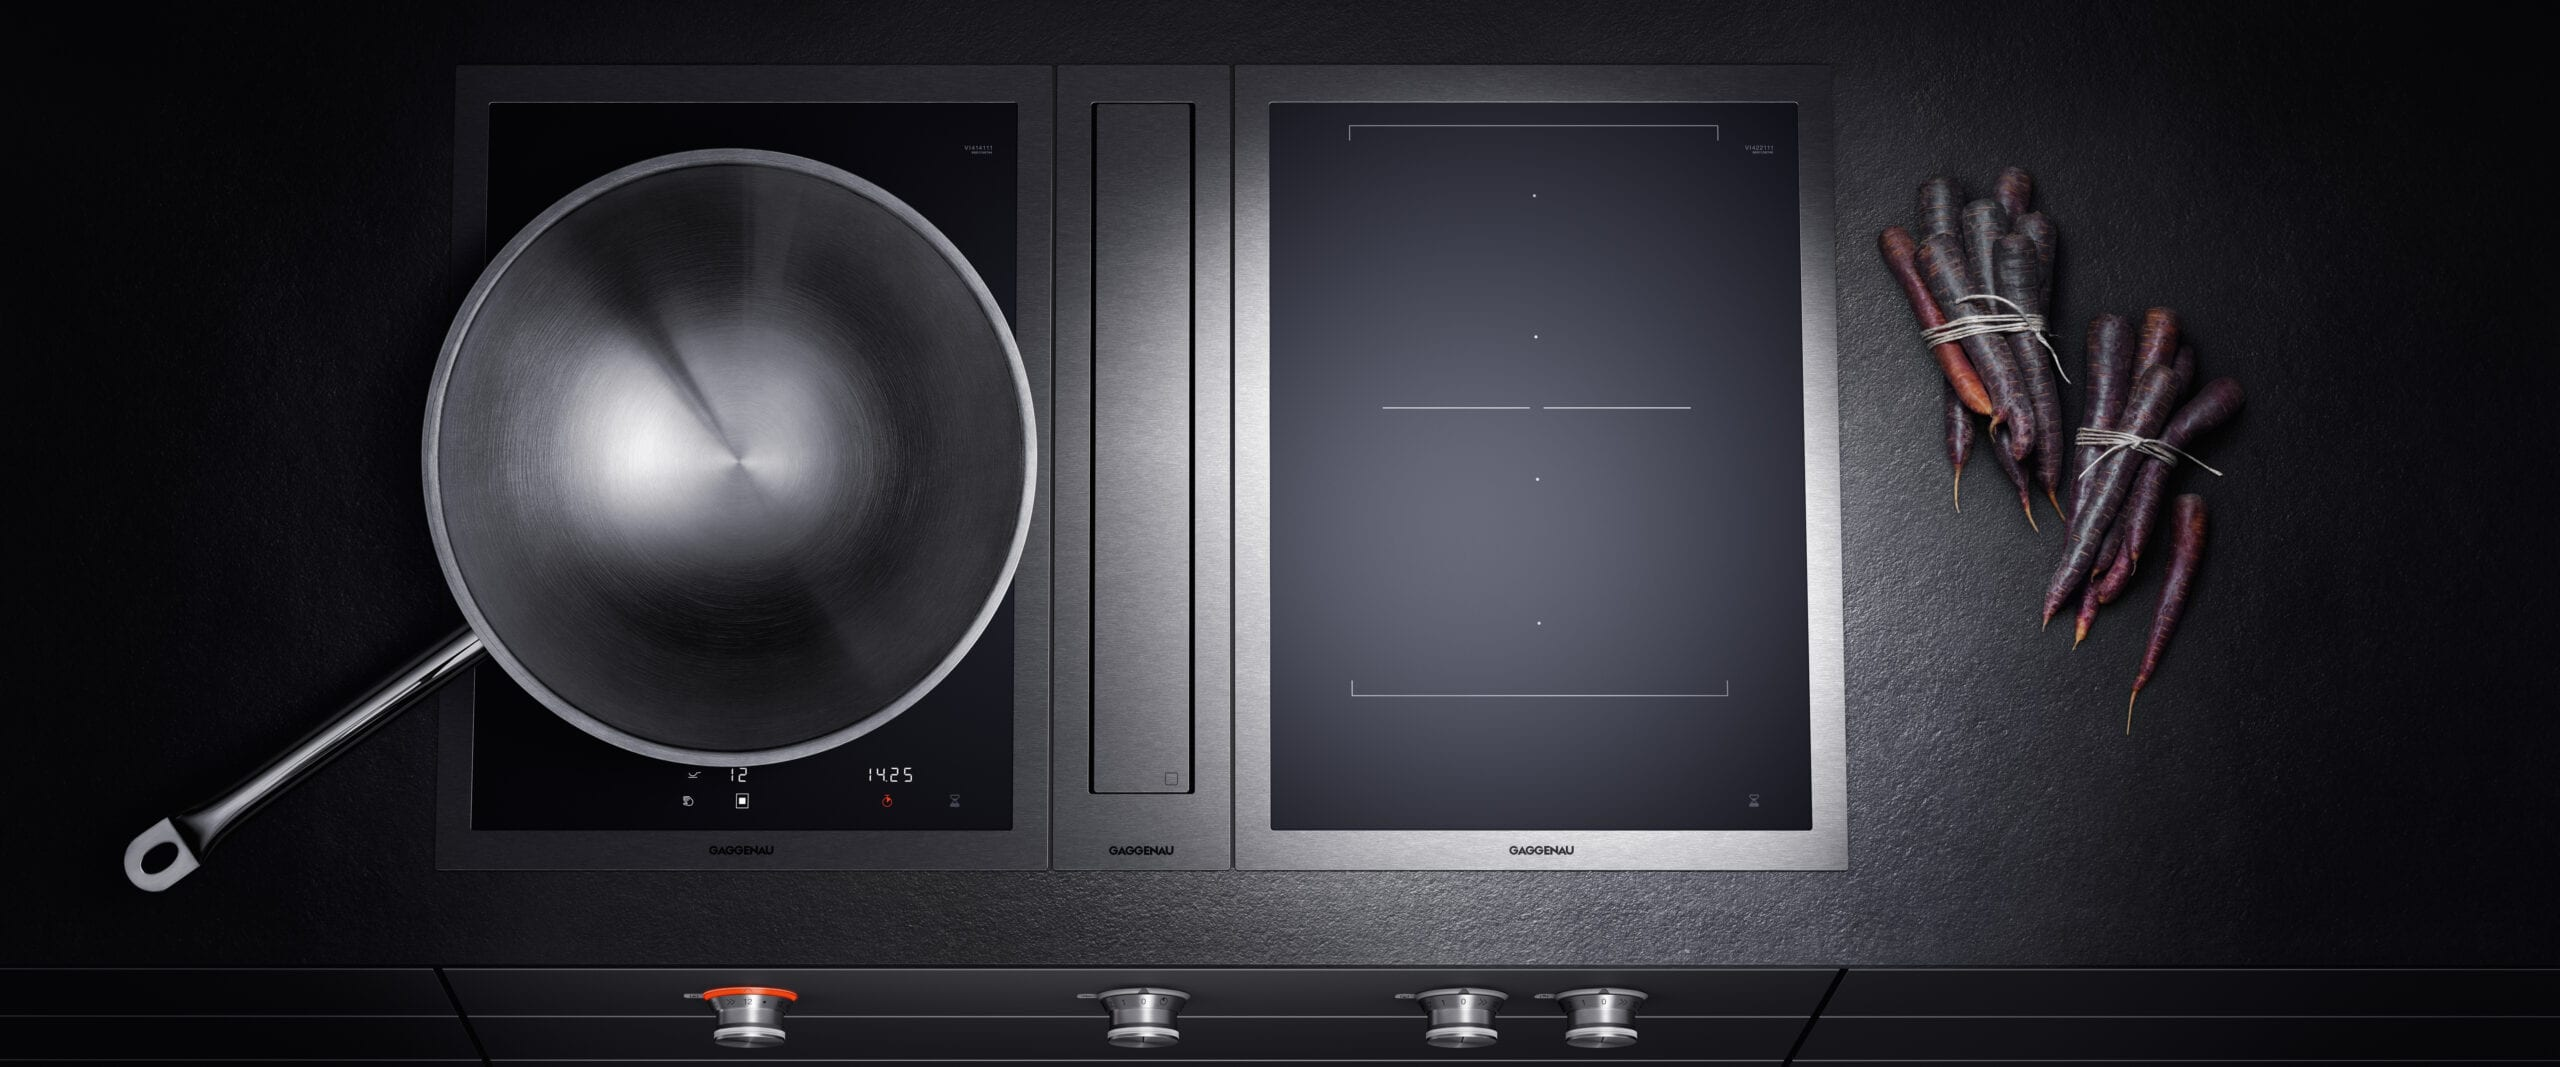 Mcim02584099 Stage 1 Vario Cooktops 400 Series   Such Designs, London